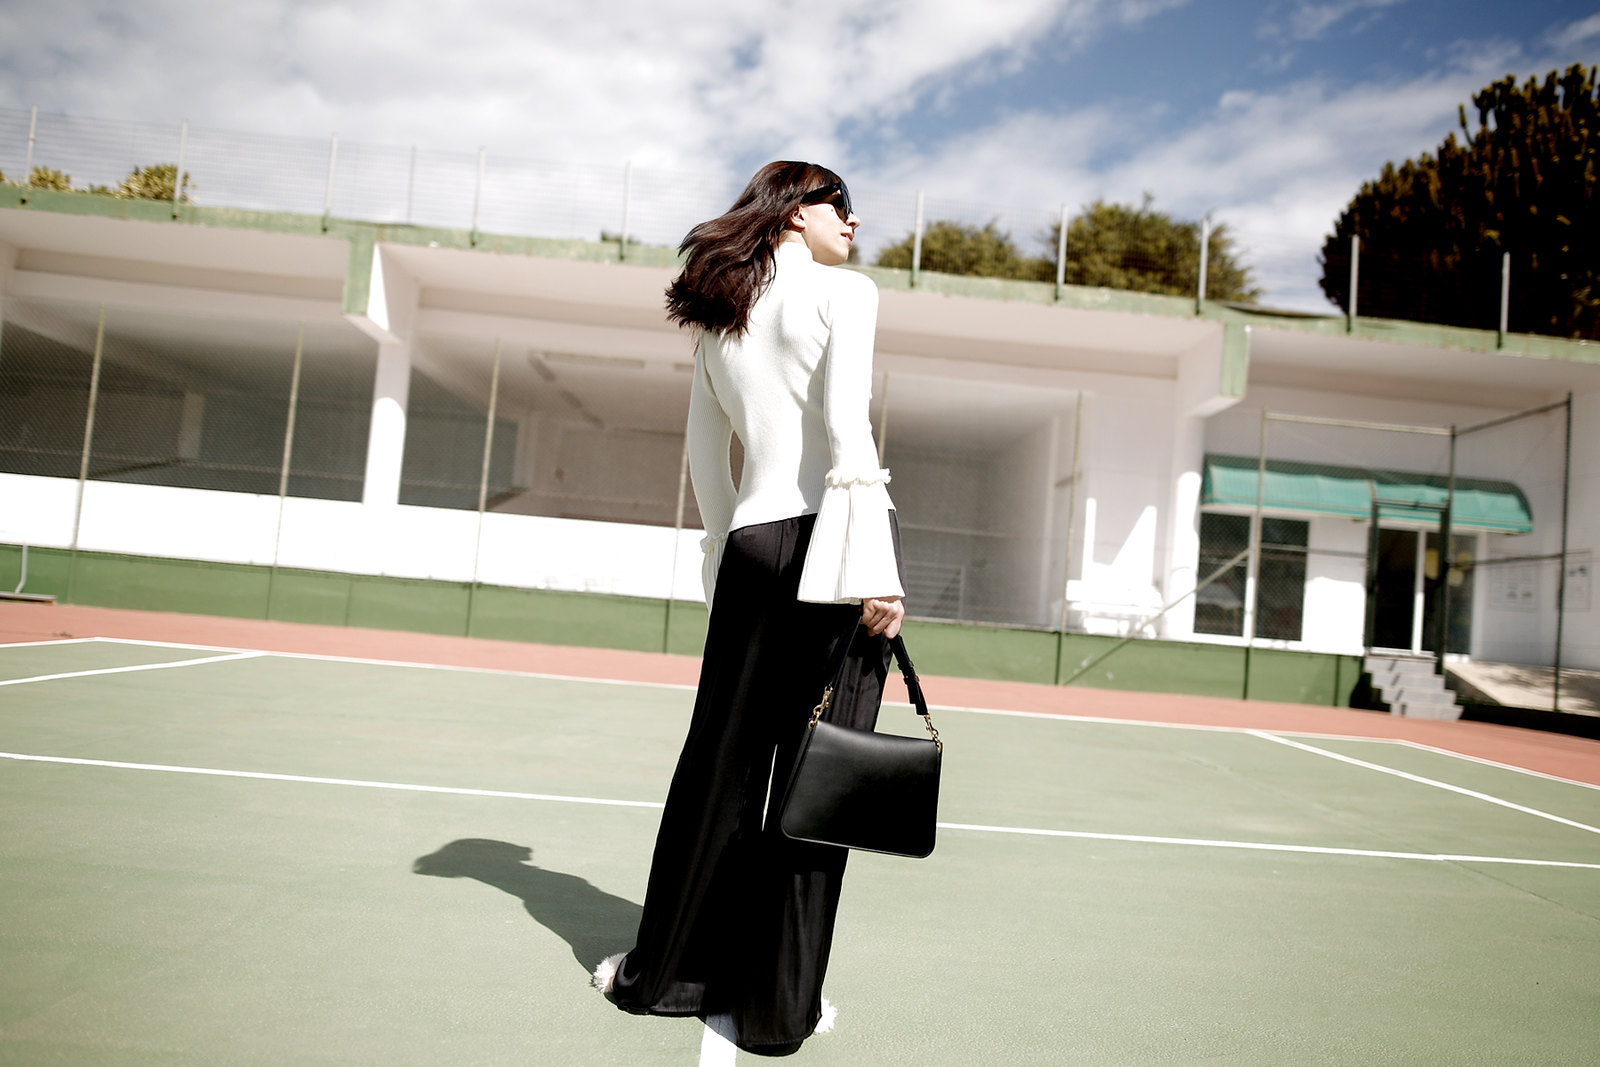 tennis edgy styling editorial photography chicwish white knit bell sleeves silk pants summer heat style céline audrey sunglasses j.w.anderson pierce bag zara sandals shadows fashionblogger outfit ootd modeblog cats & dogs ricarda schernus düsseldorf 2